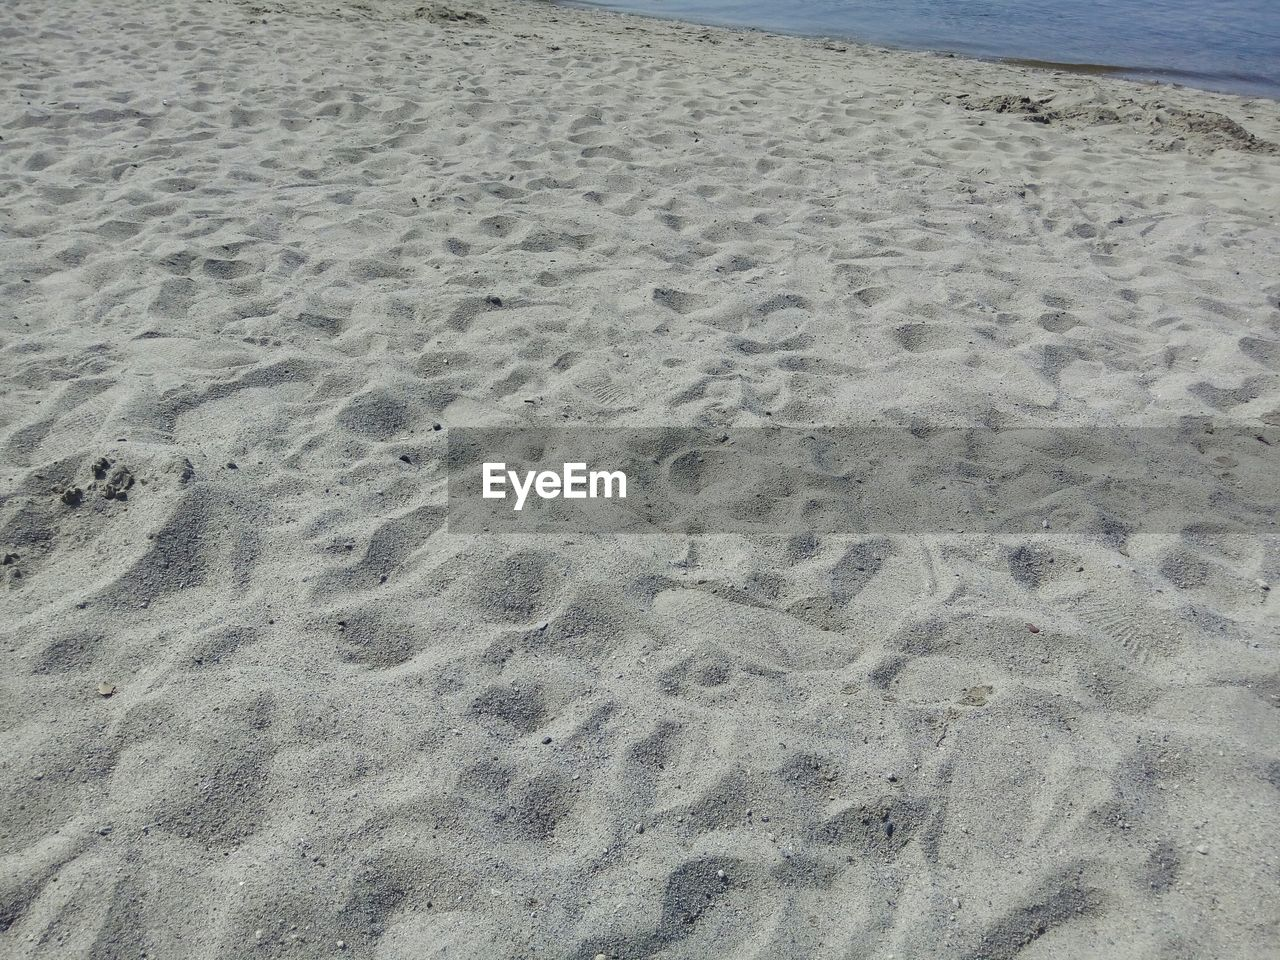 sand, beach, shore, nature, sea, no people, pattern, day, outdoors, water, beauty in nature